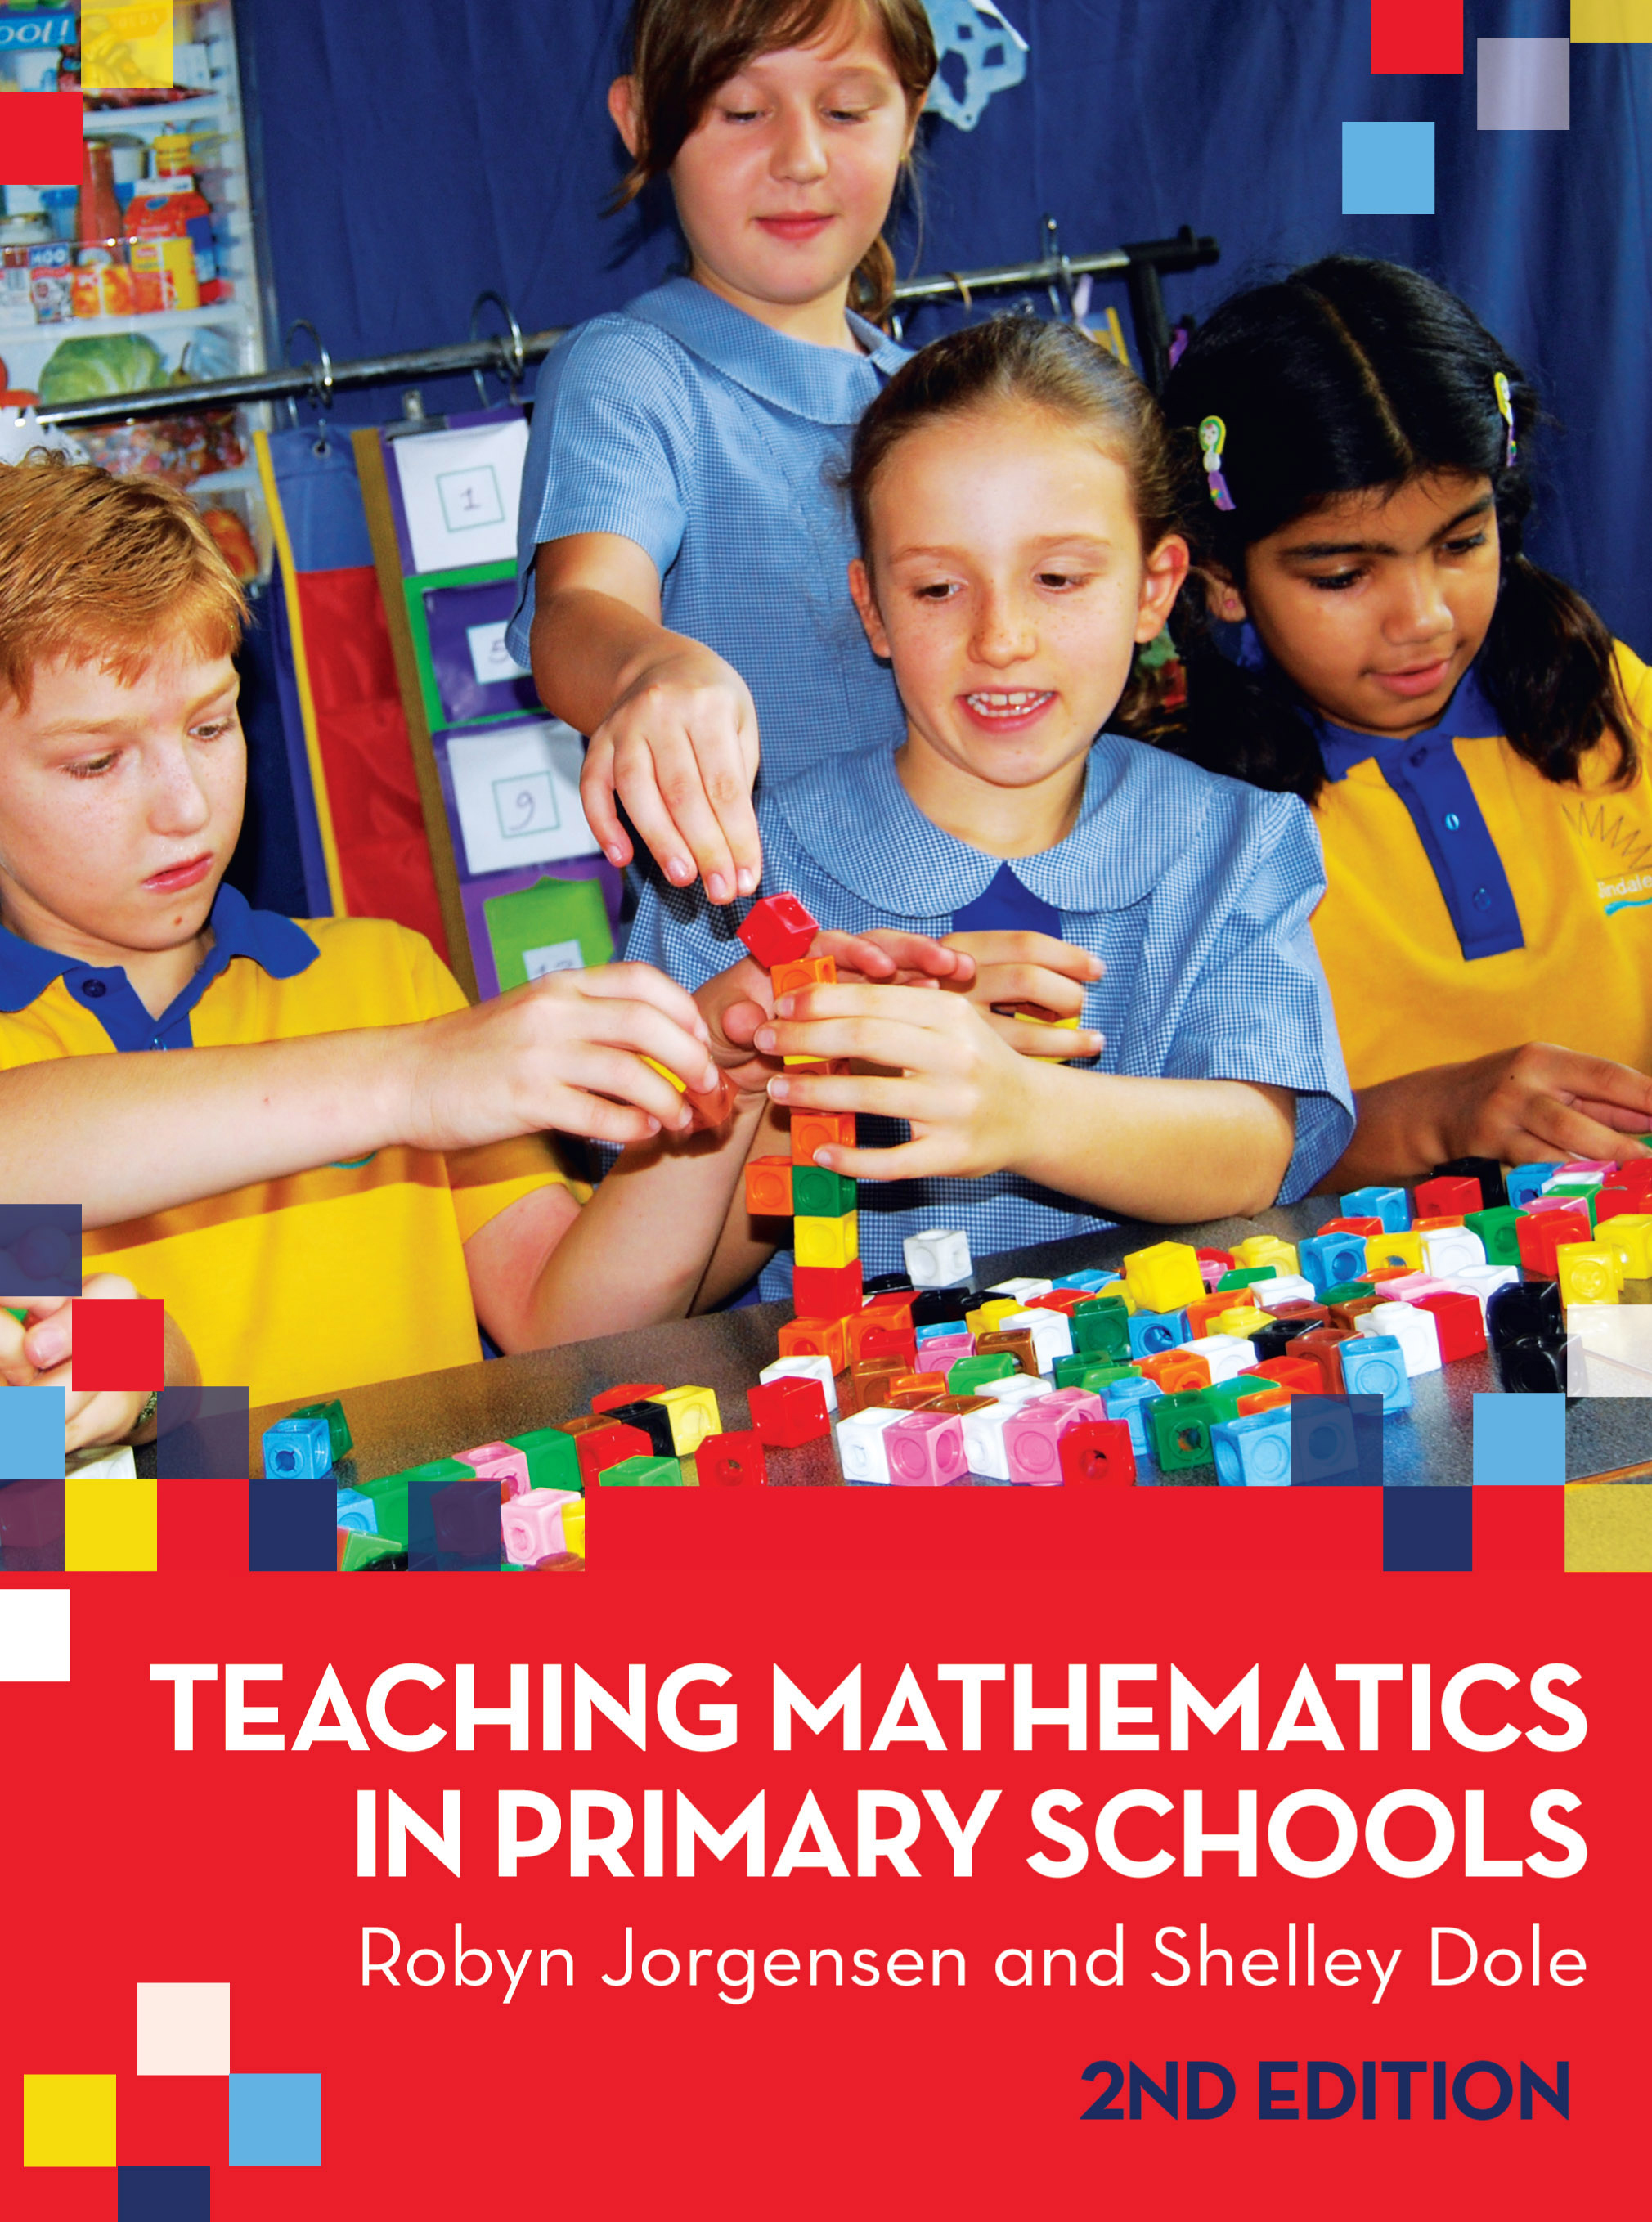 Teaching Maths Teaching Mathematics In Primary Schools Robyn Jorgensen And